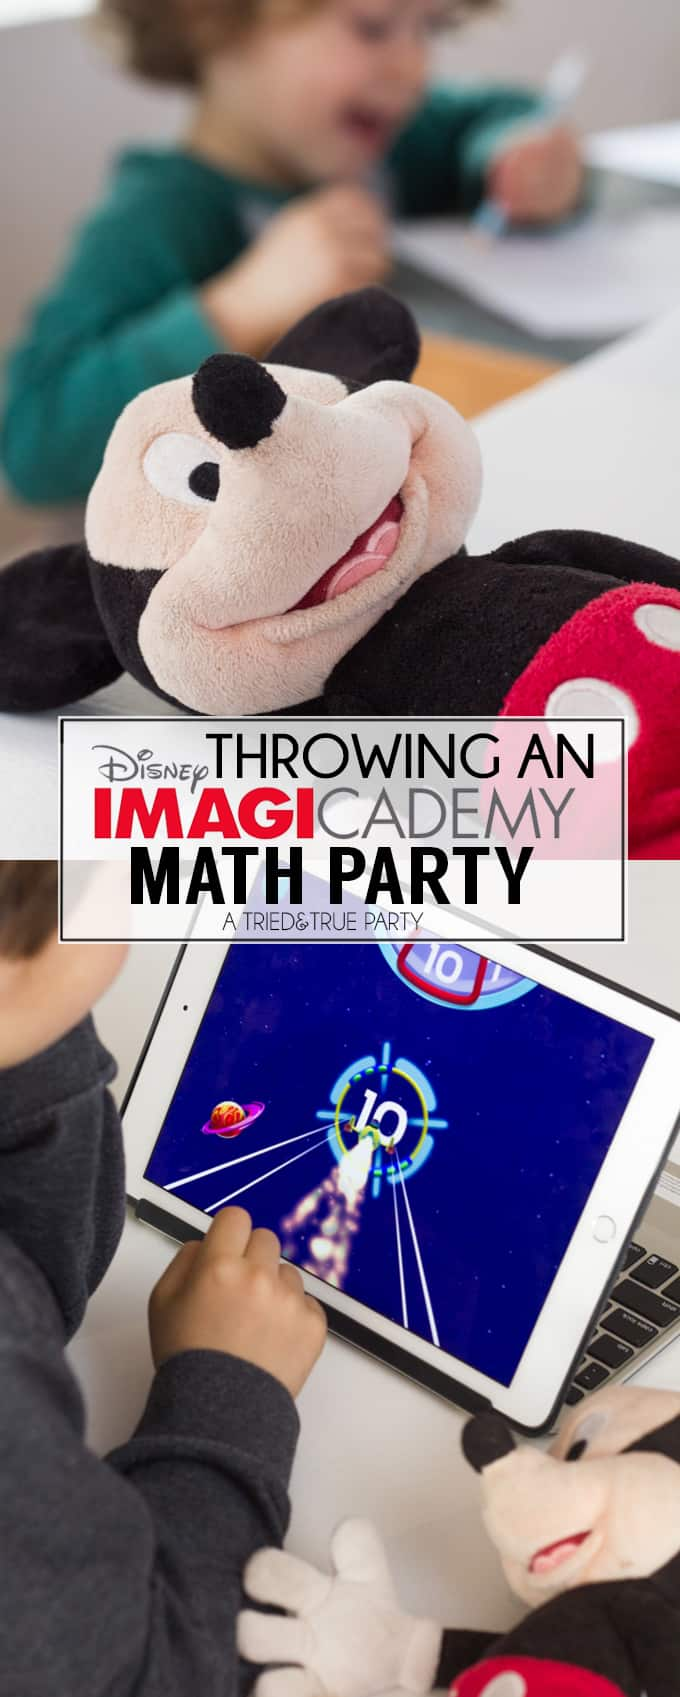 Throwing An Imagicademy Math Party - Tons of fun ideas for adding basic math concepts to parties!